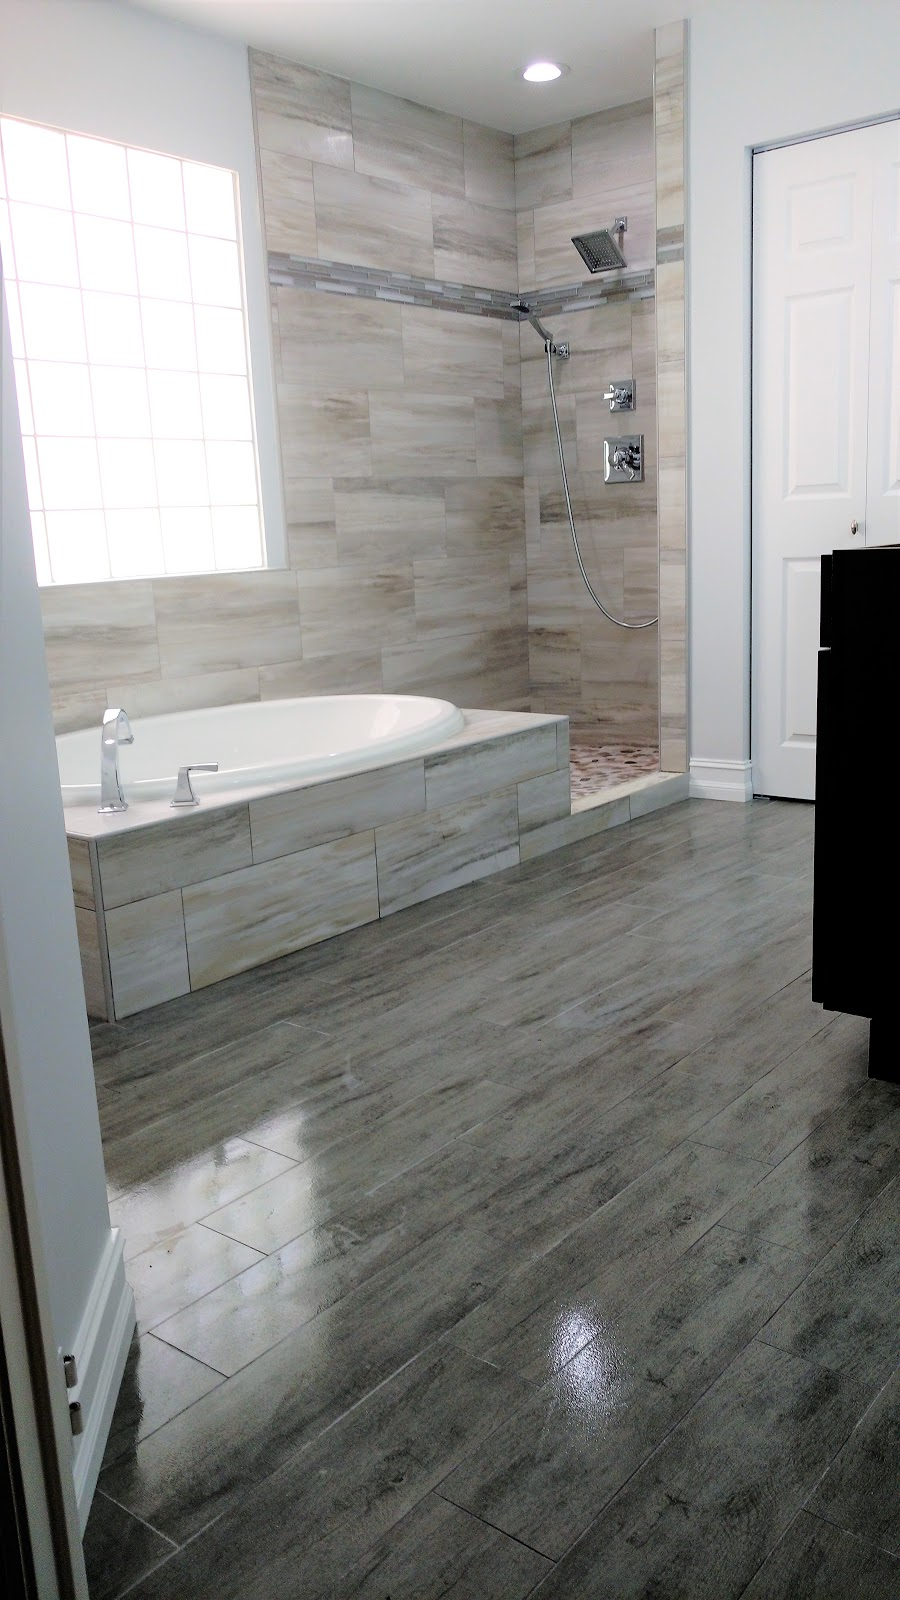 House Call Construction – Remodeling Custom Kitchens and Baths